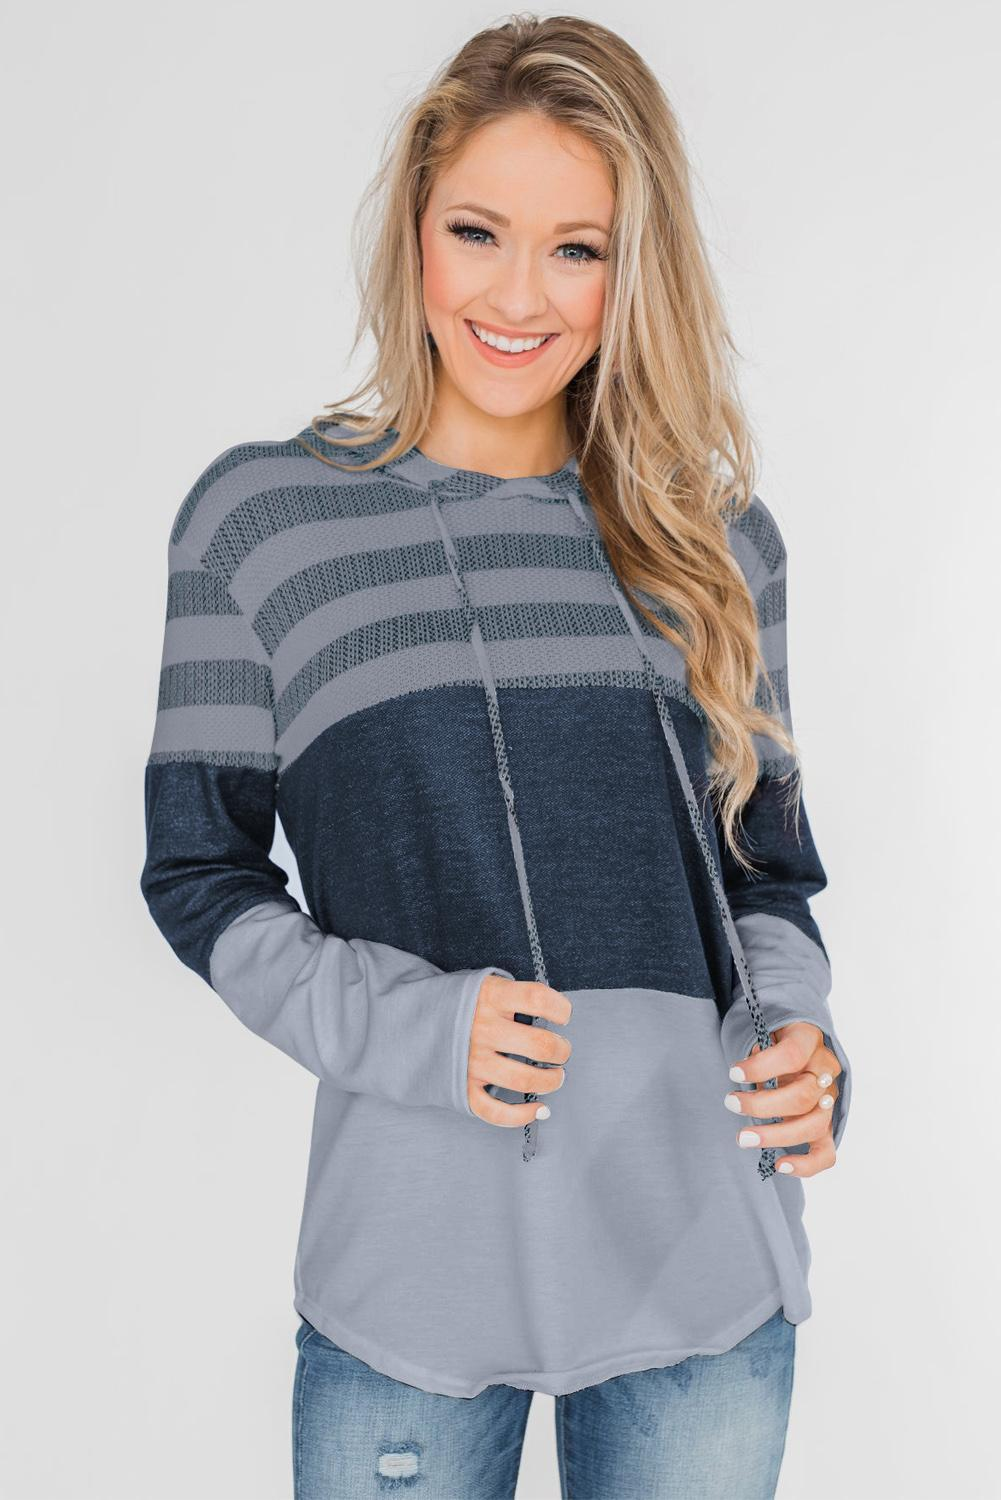 Gray Speak to Me Color Block Drawstring Hoodie - Winter Haven Co